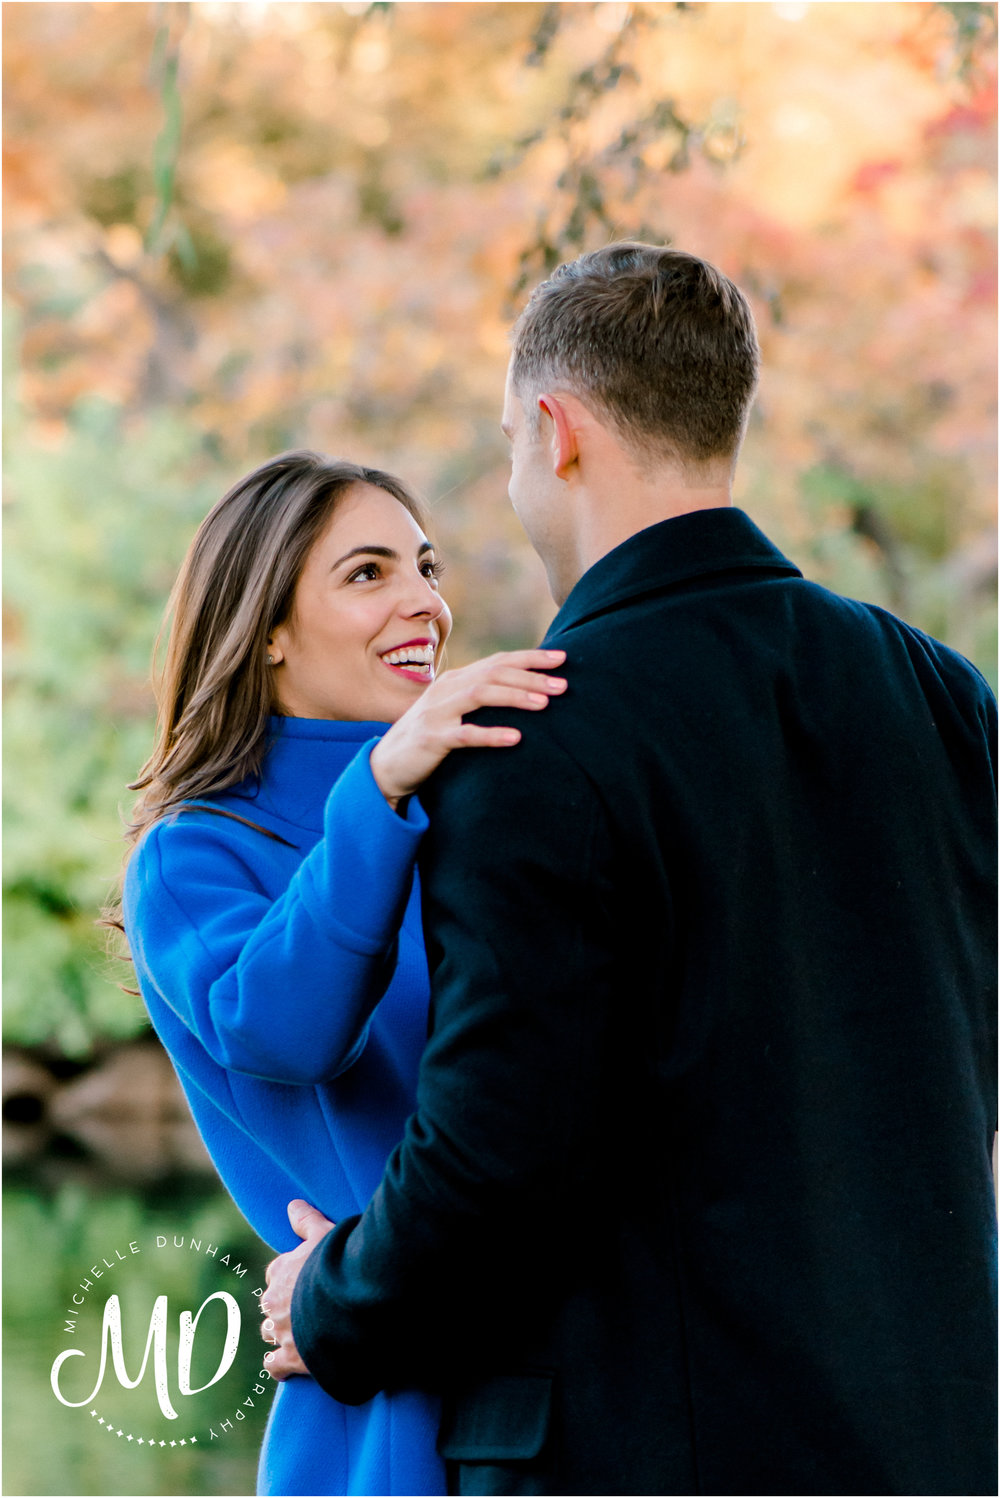 Michelle-Dunham-Photography-Engagement-Public-Garden-Boston-16.jpg